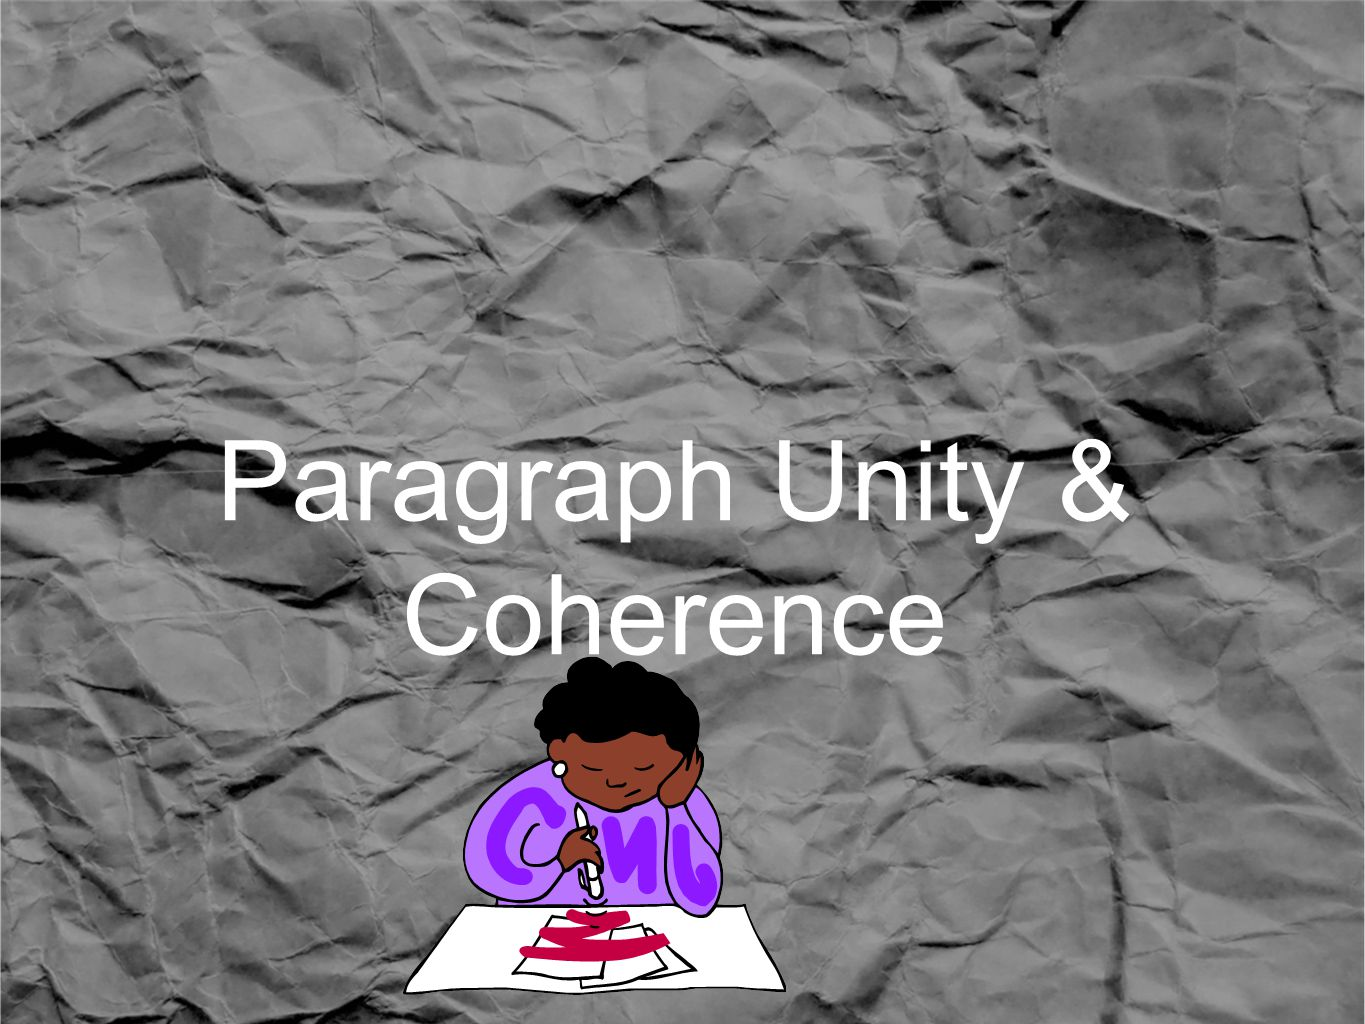 Paragraph Unity & Coherence